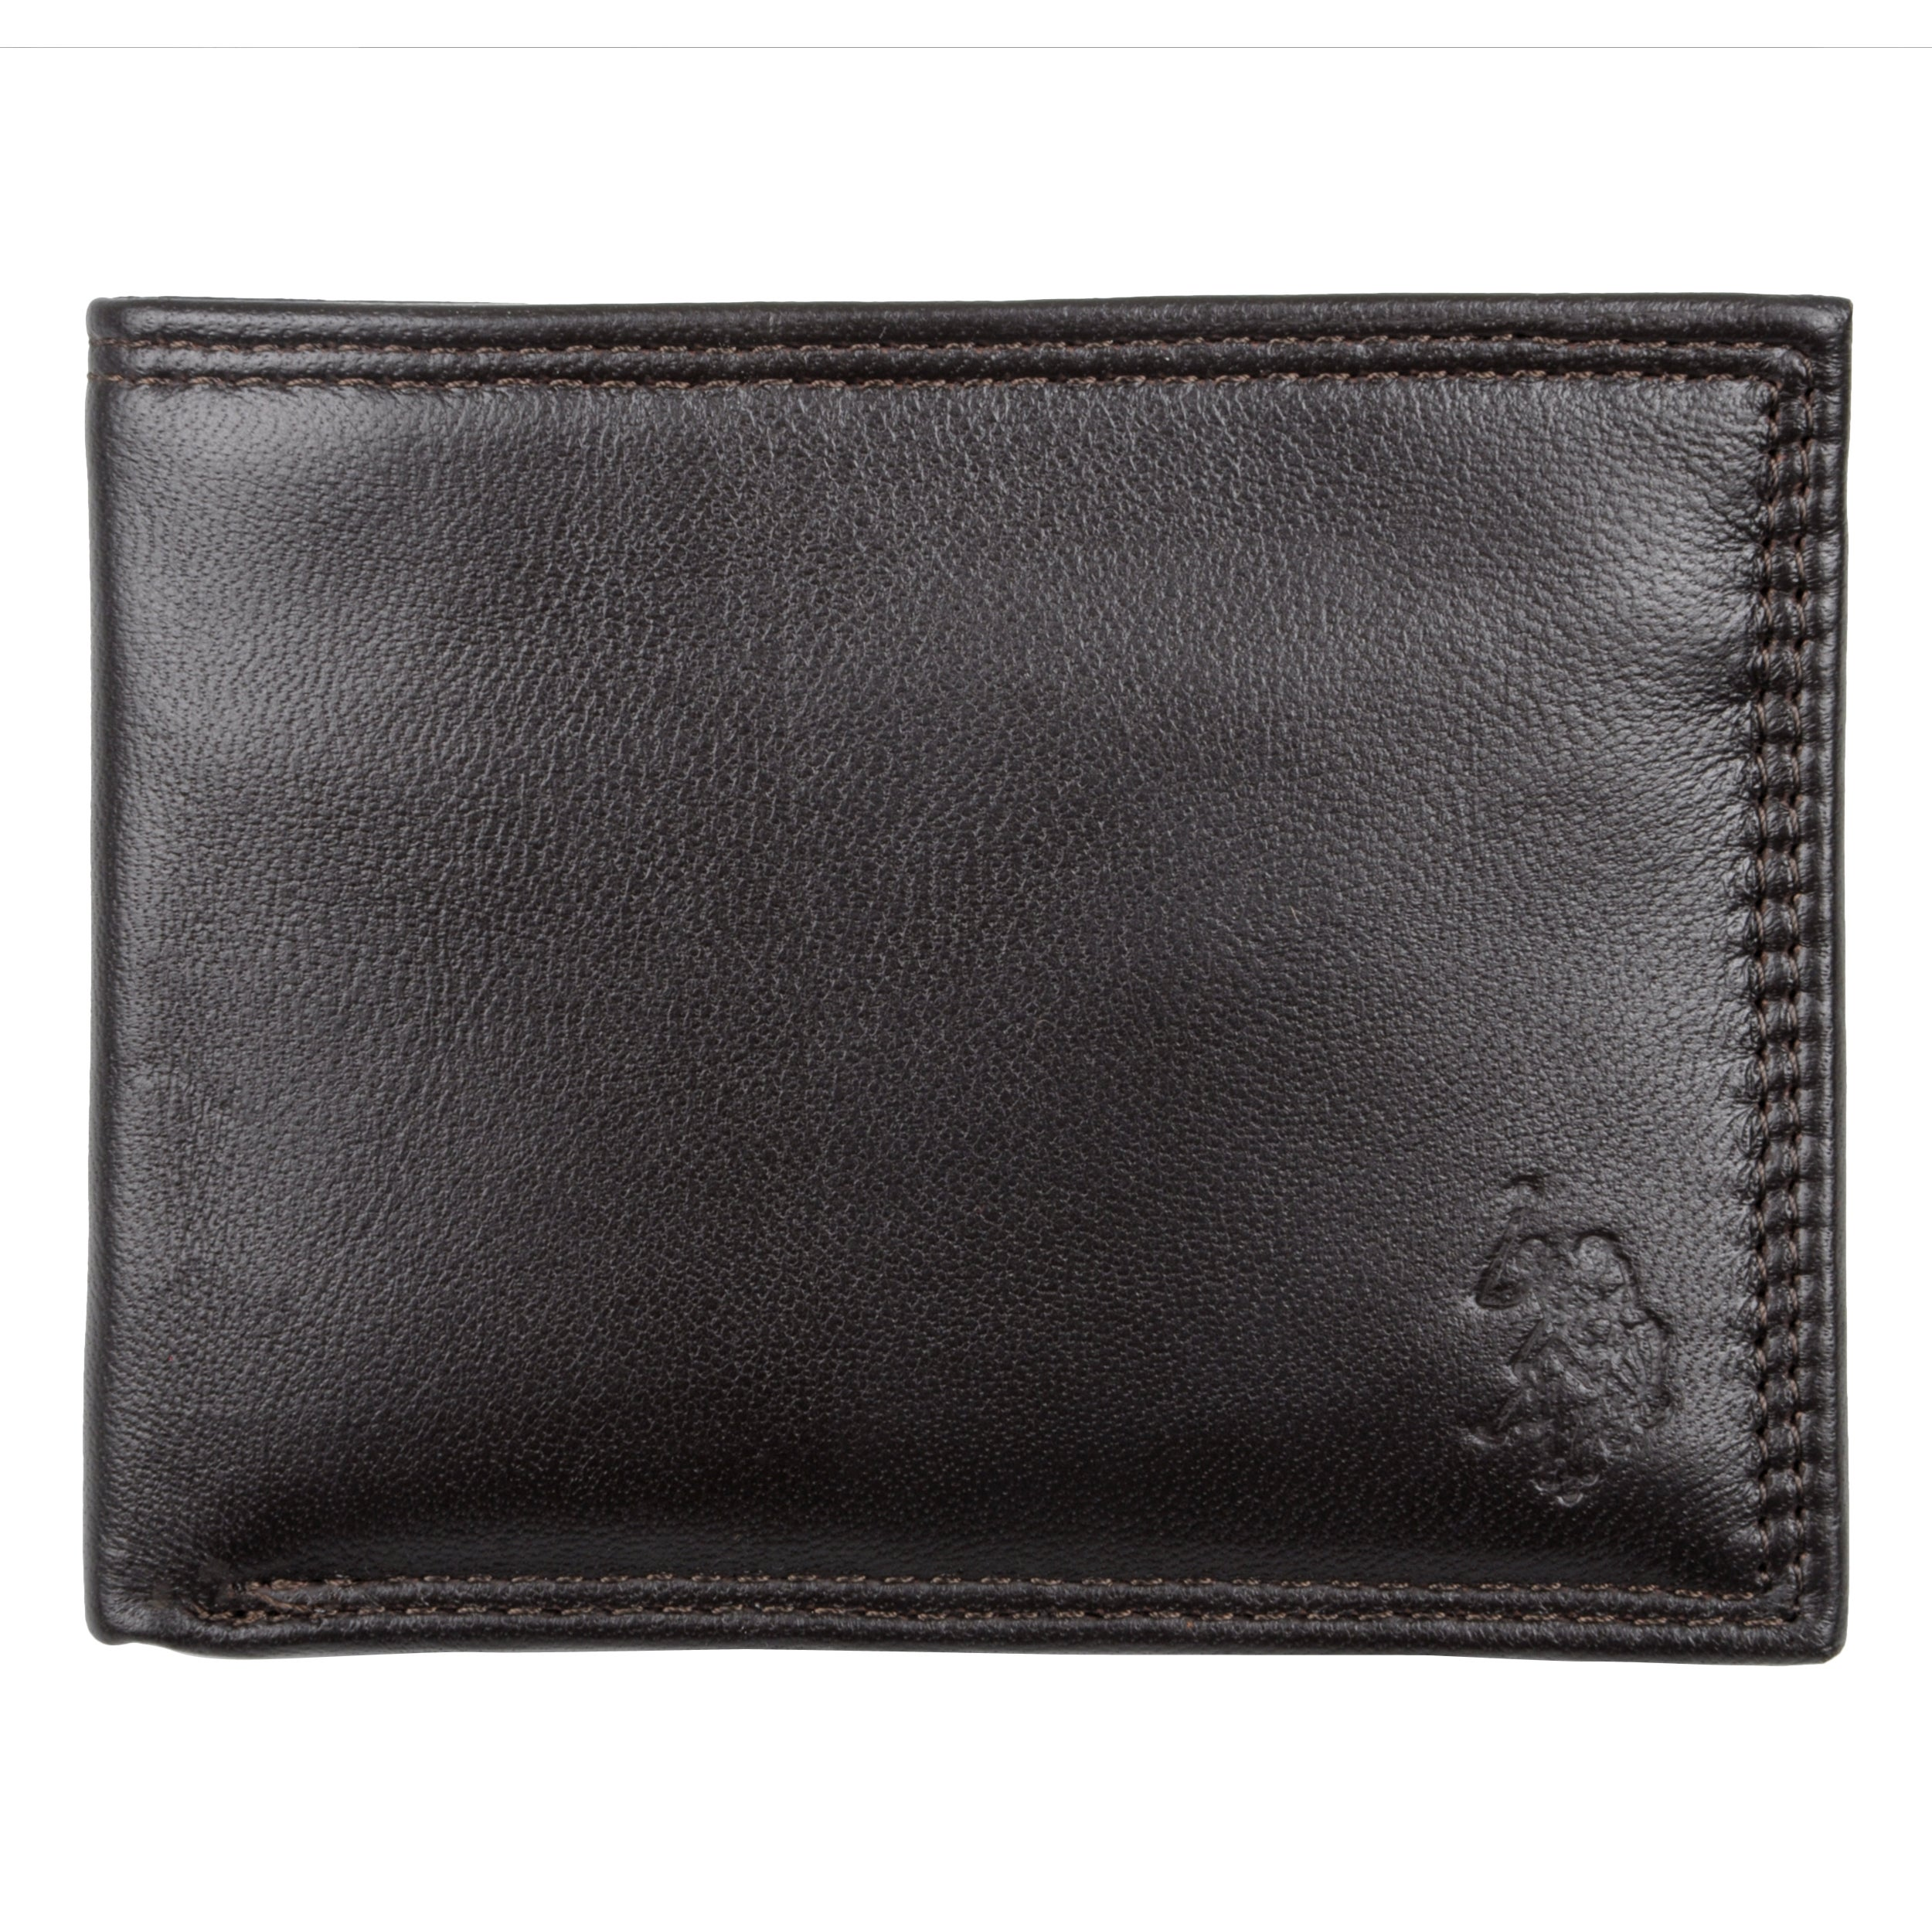 36e101288 U.s. Polo Association Mens Genuine Leather Passcase Wallet on PopScreen